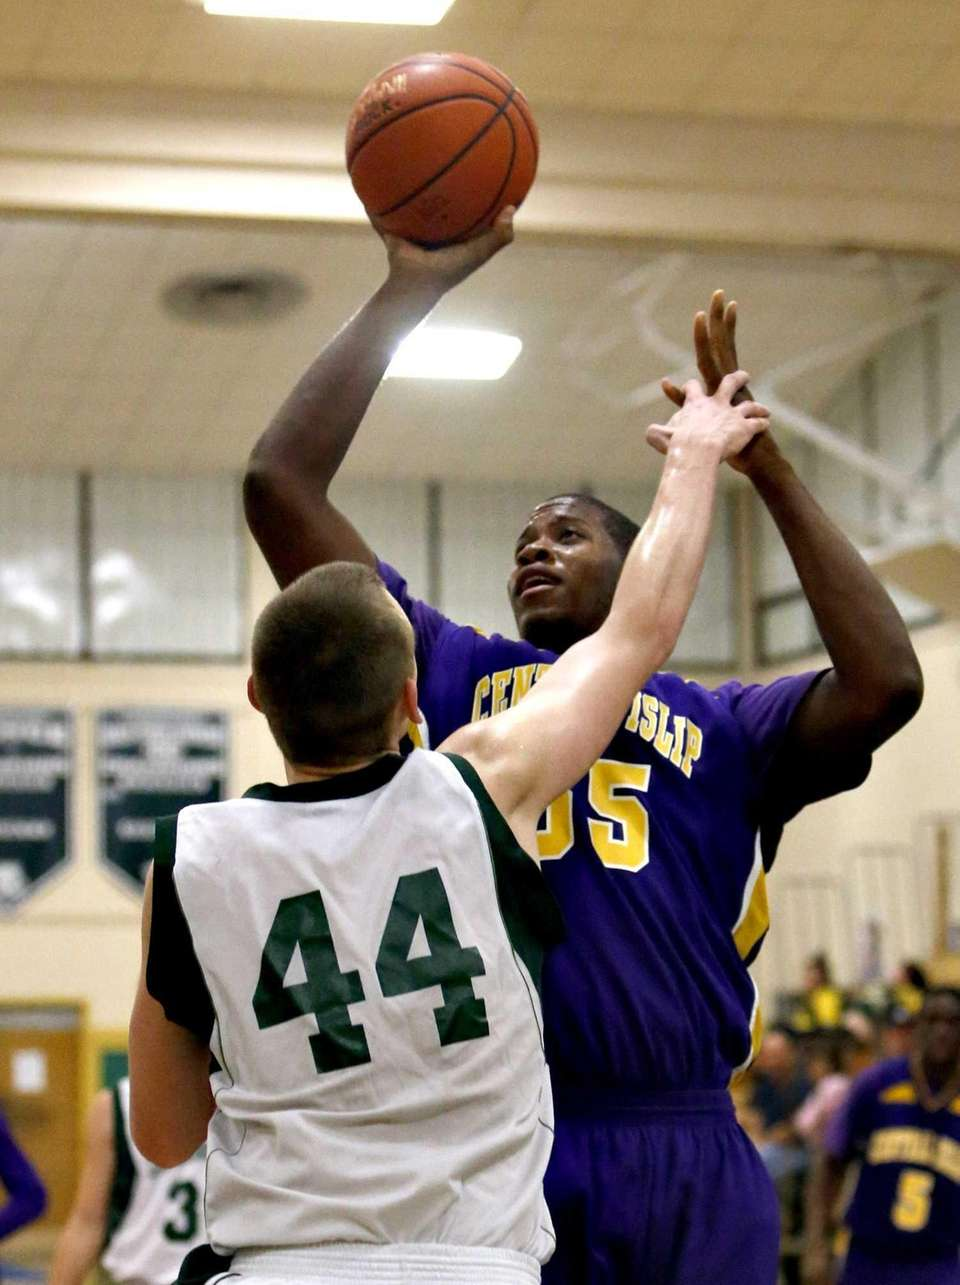 Central Islip's Malcolm Pridgeon is fouled by Lindenhurst's